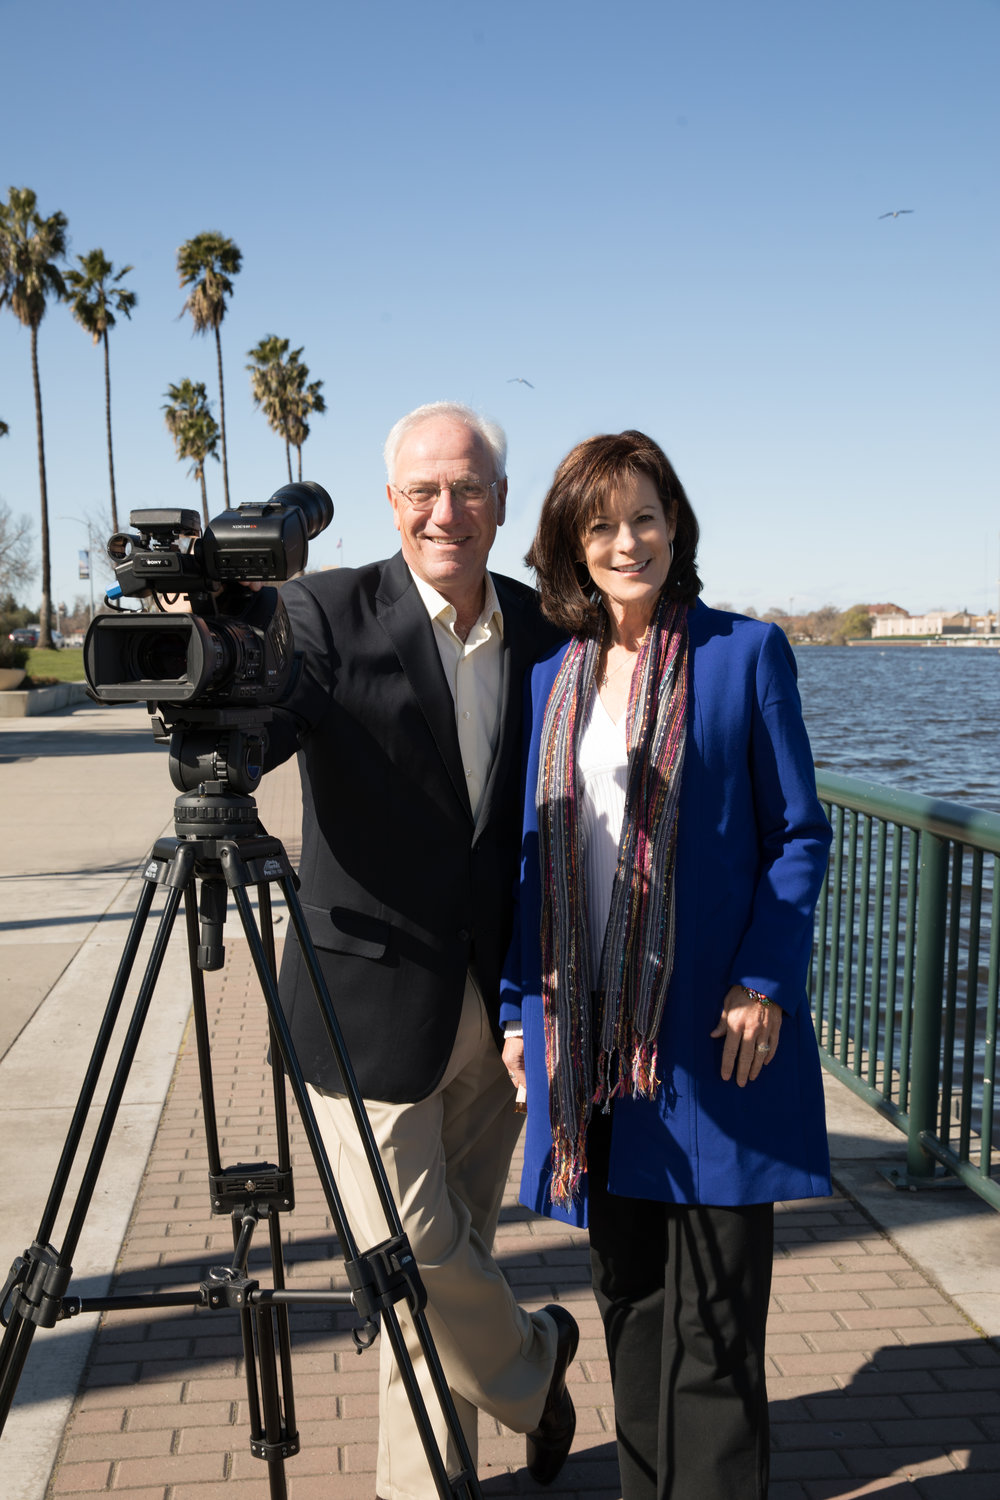 Barbara and Tim filming at the downtown Stockton waterfront